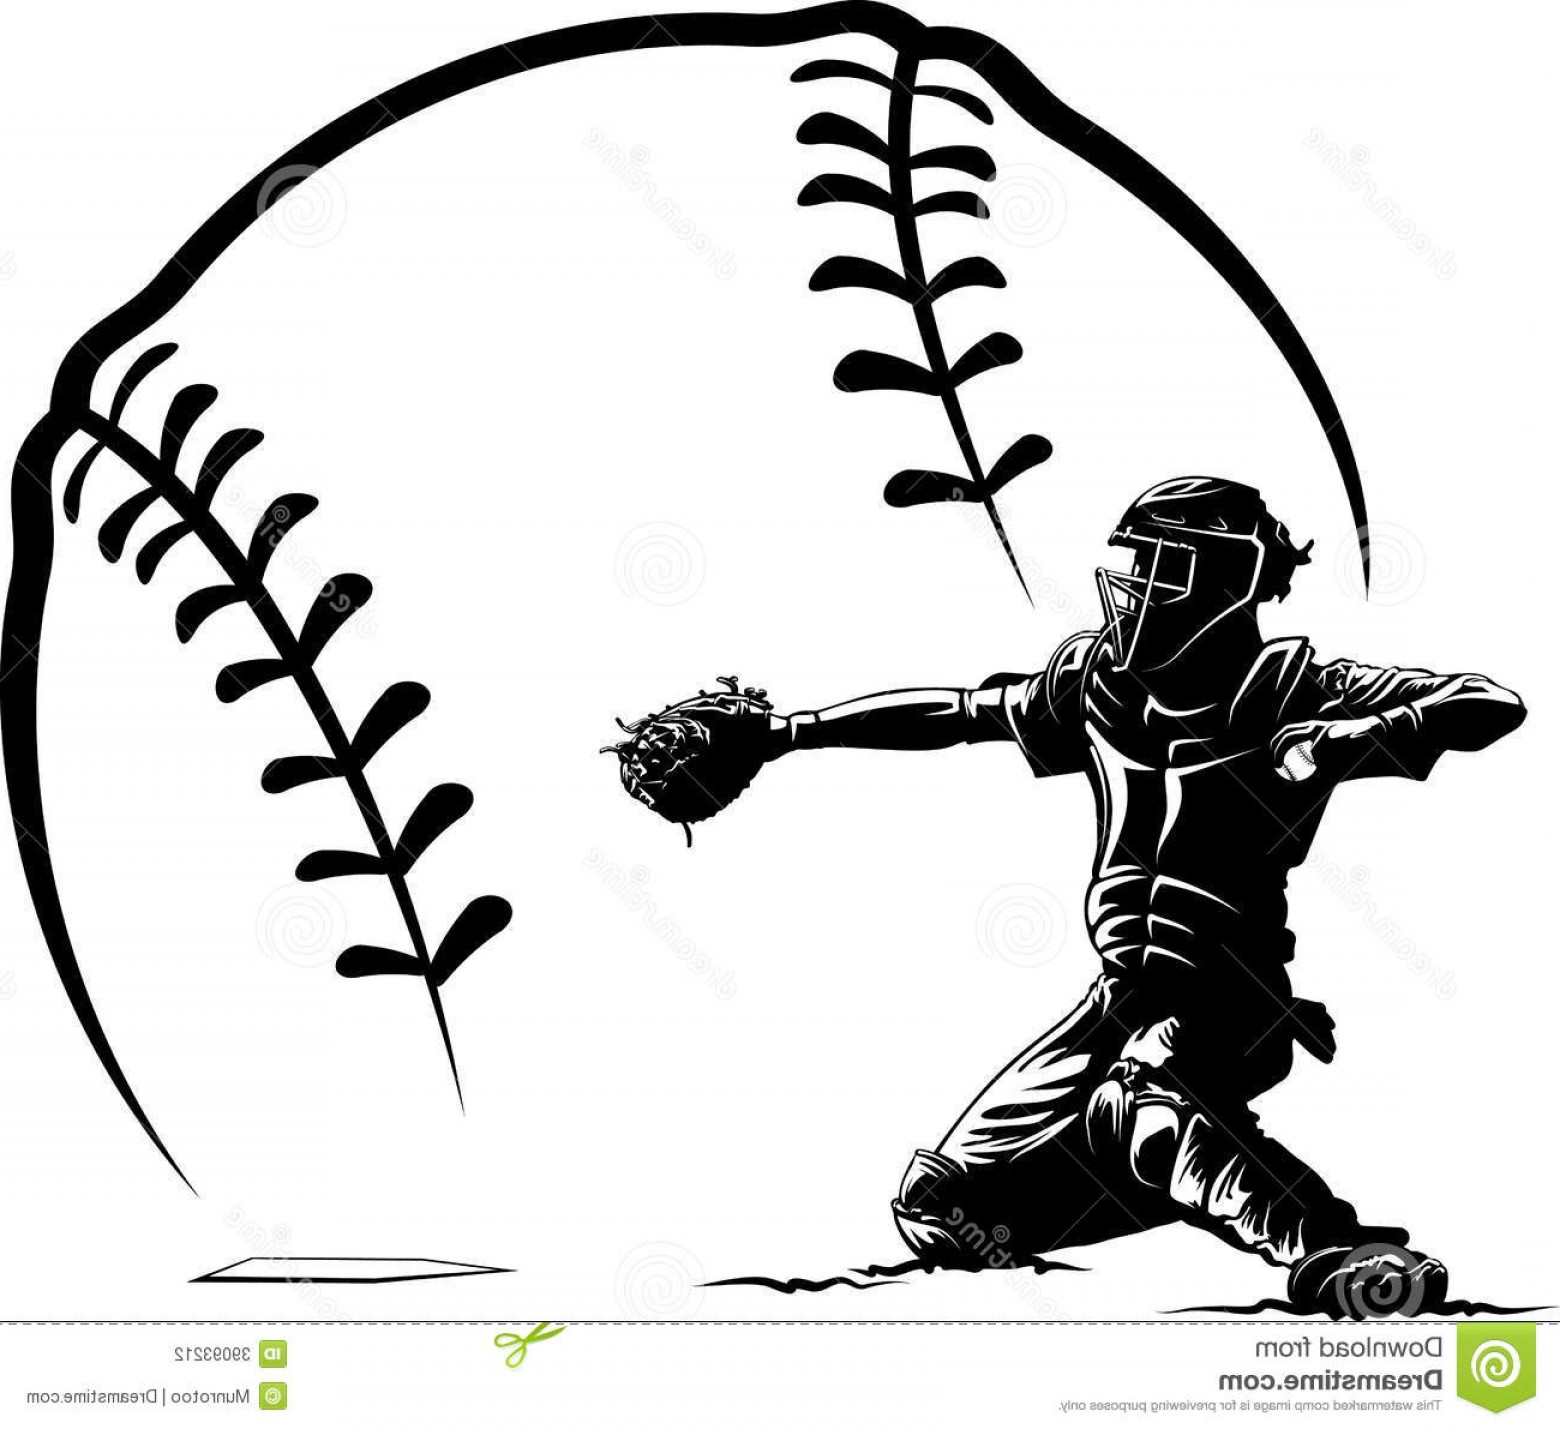 Softball Laces Vector Art B W: Stock Photography Baseball Catcher Home Plate Stylized Ball Black White Illustration Getting Ready To Throw Out Runner Front Image